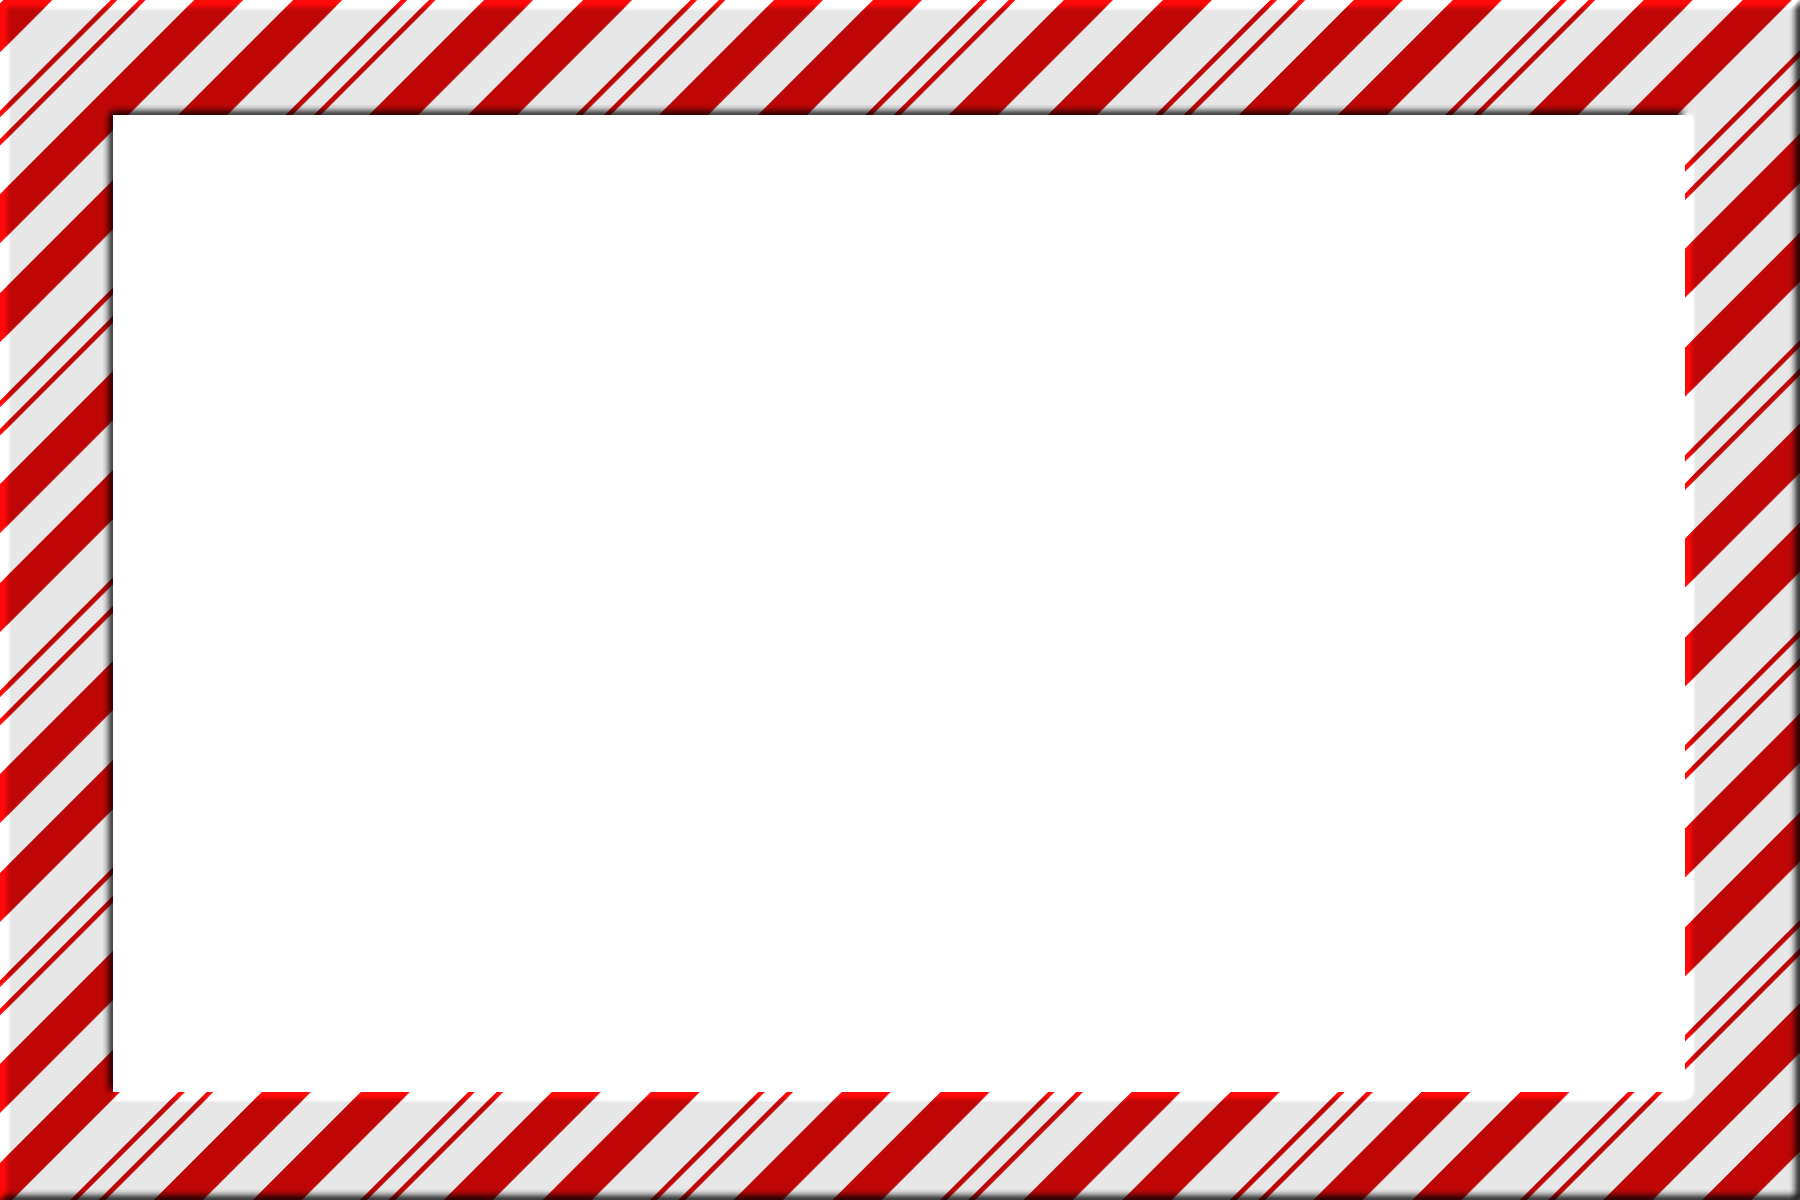 Candy Cane Borders 512 X 512 51 Kb Jpeg Candy Cane Border 470